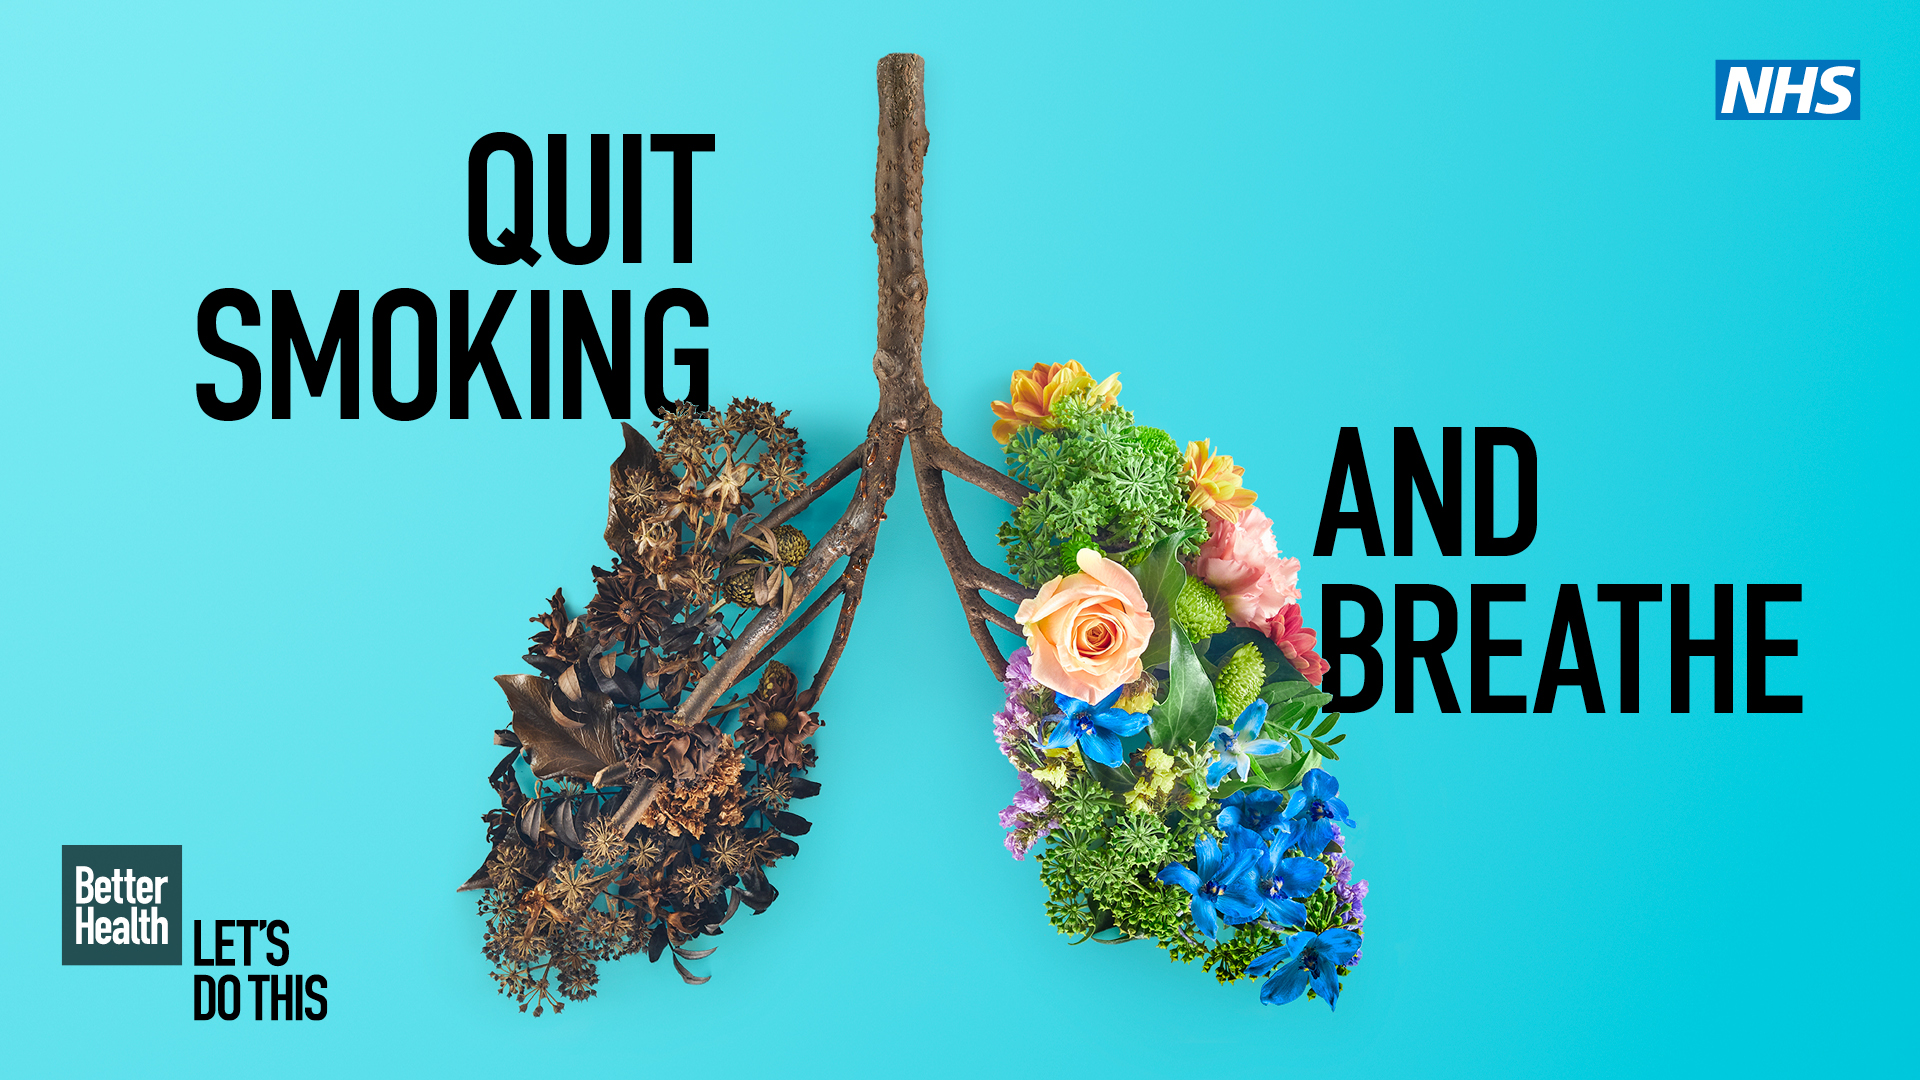 Quit smoking with us this Stoptober